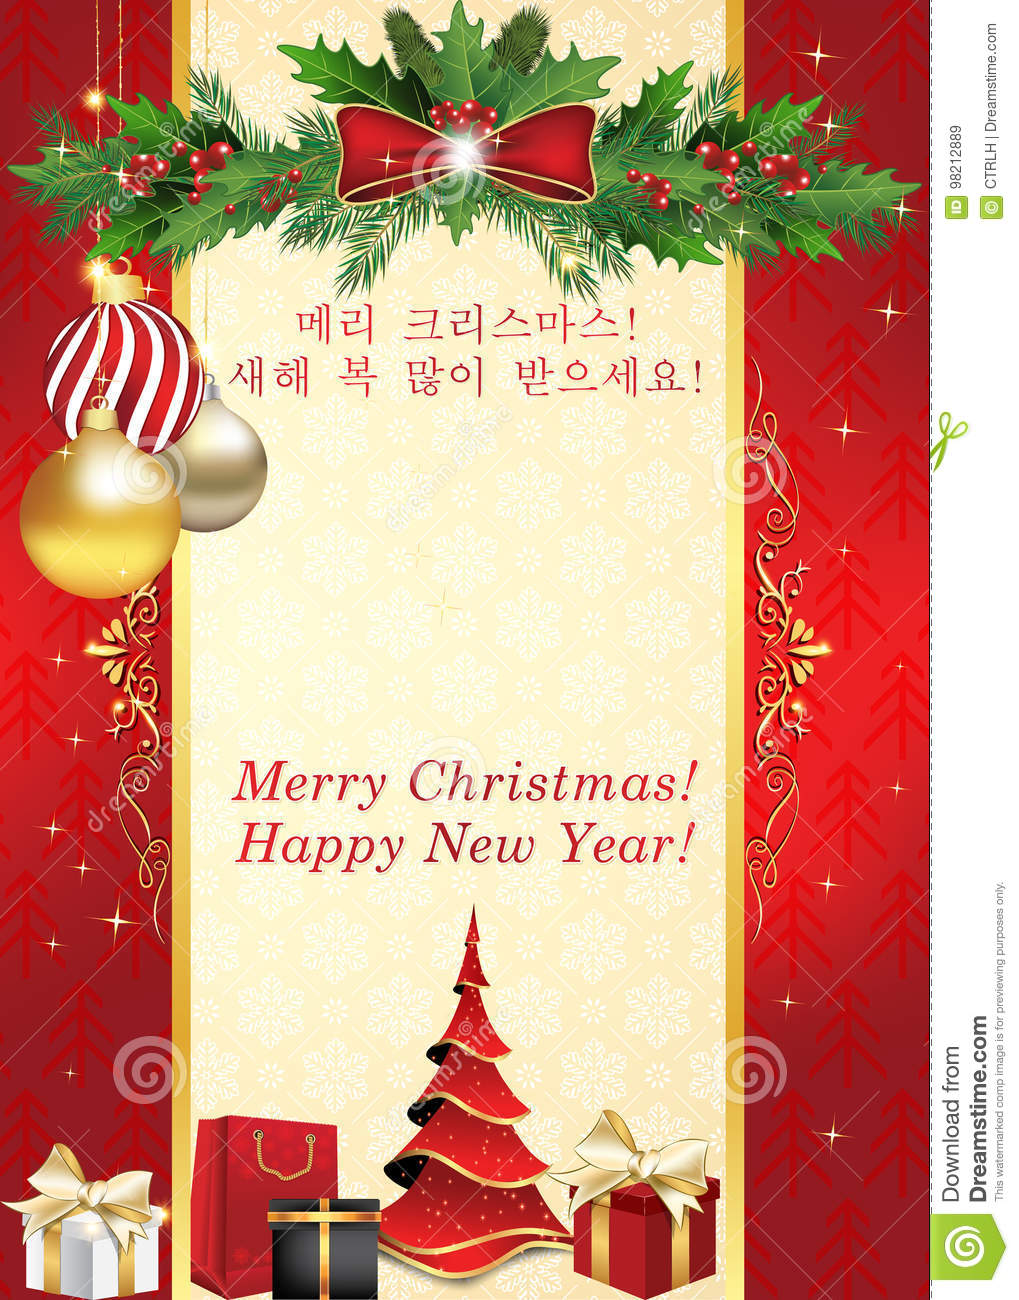 Korean Greeting Card For Christmas And New Year Stock Illustration ...